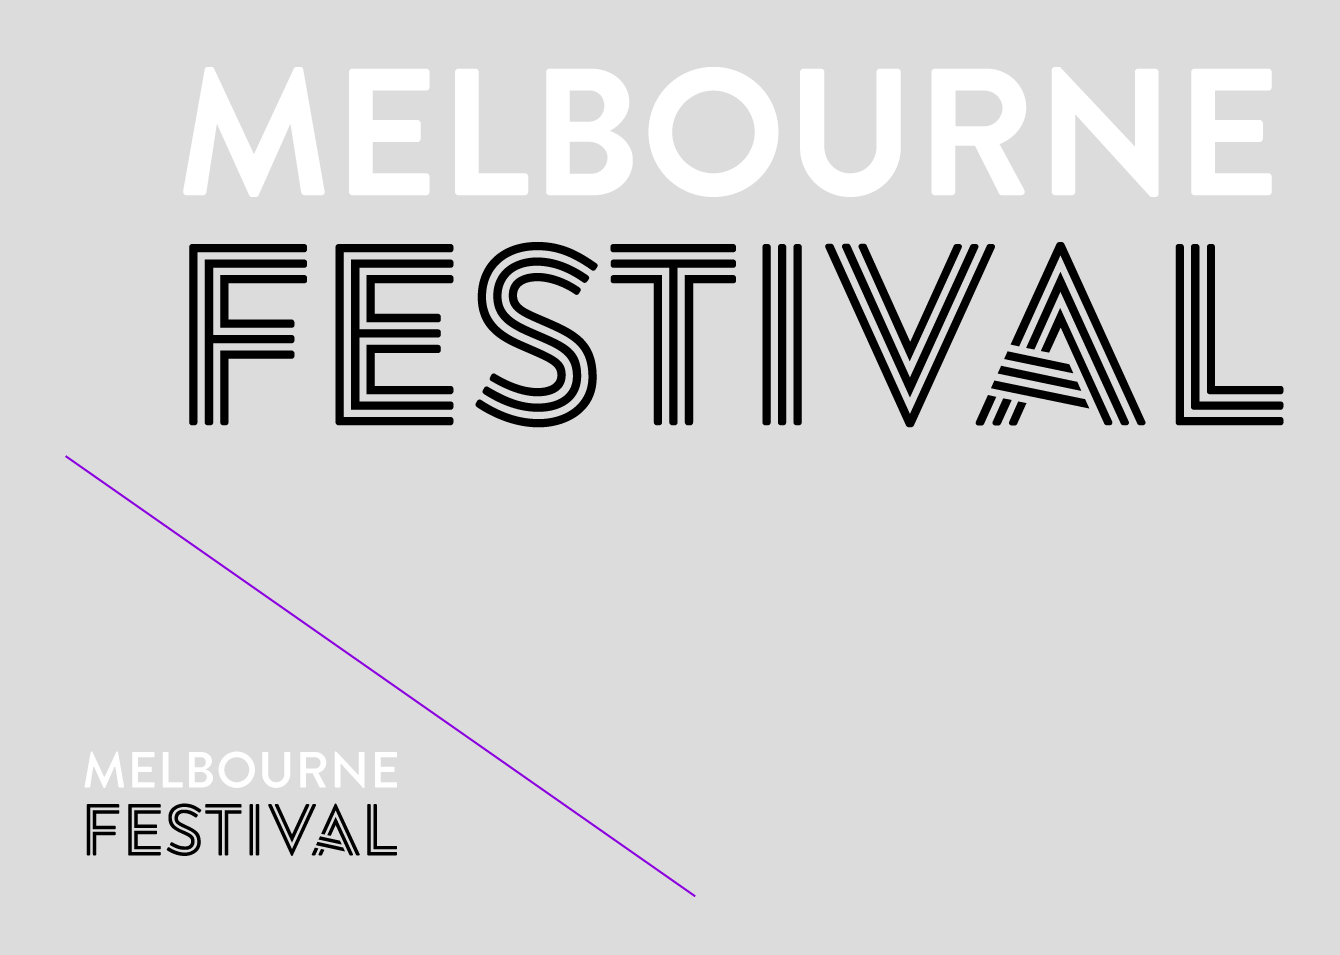 custom type, typografische Anpassung, typographic, adaptation, Jakob Runge,26+, 26plus, Type-Job, Dominic Forde, Famous Visual Services, Melbourne Festival, Art, inline, striped, optically improve